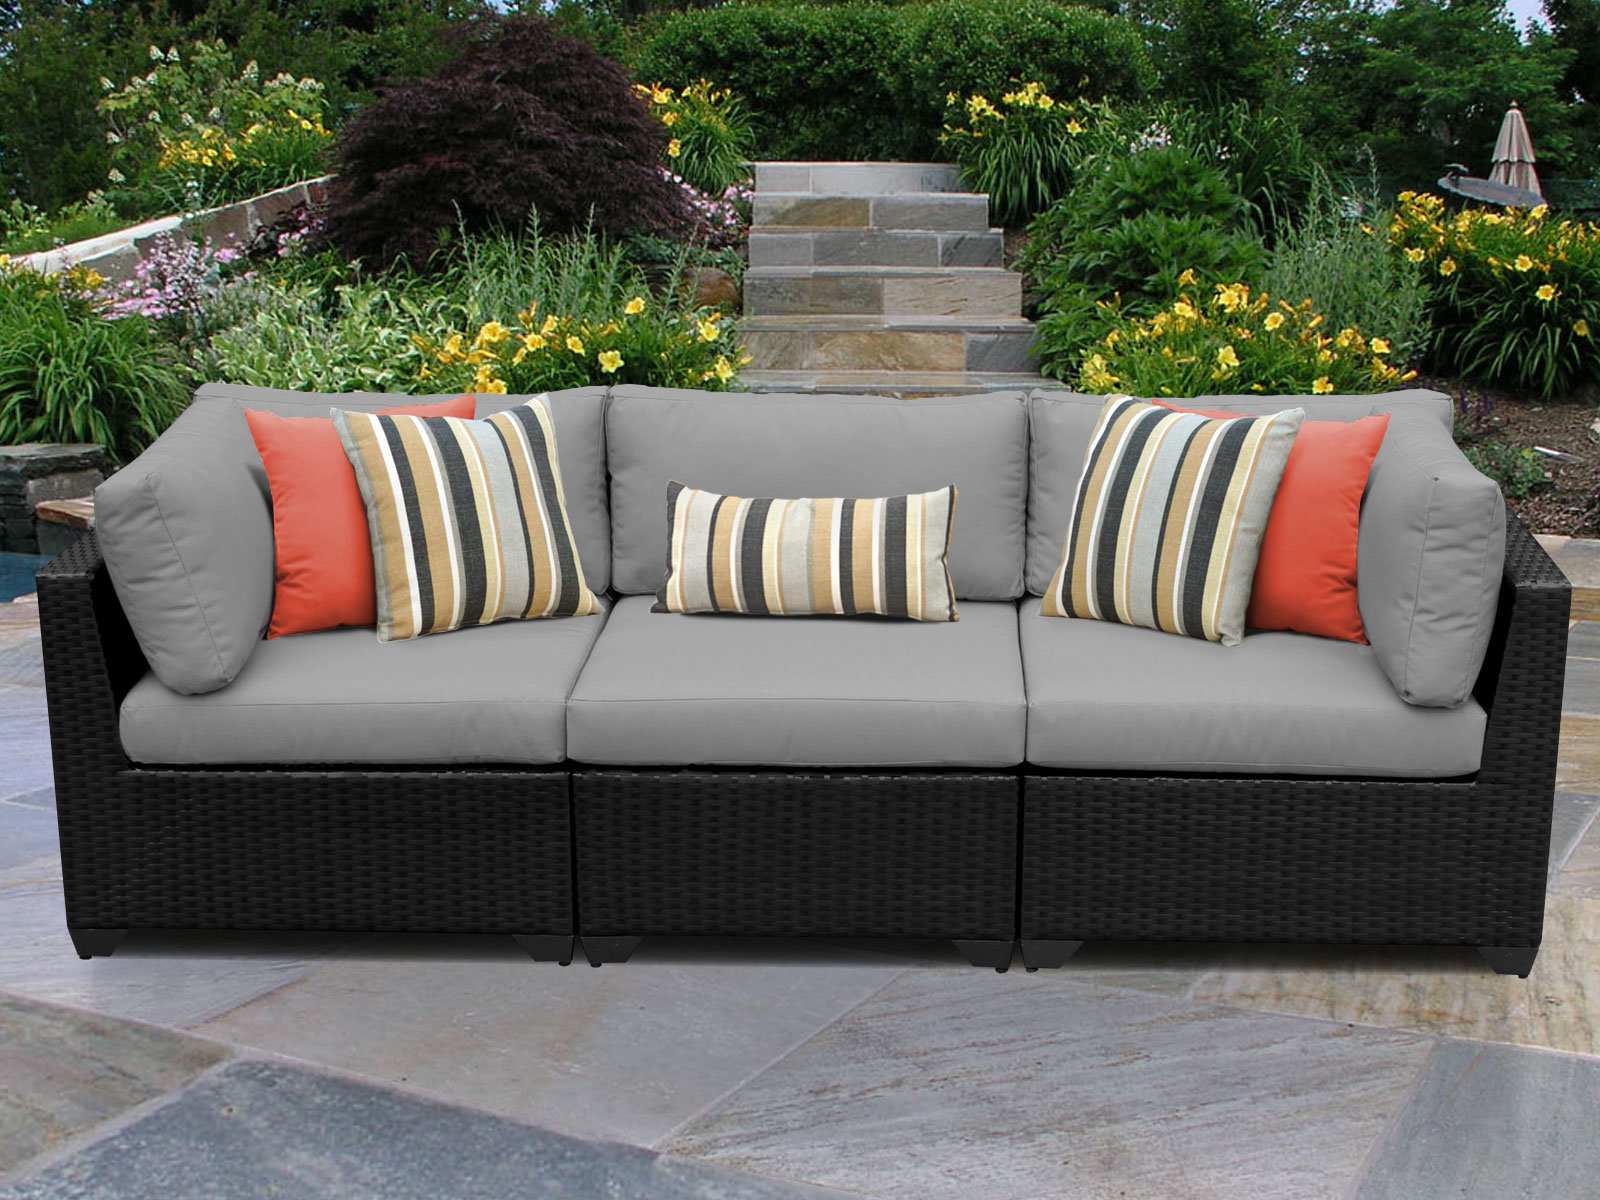 Camak Patio Sofa With Cushions Intended For 2020 Camak Patio Loveseats With Cushions (View 4 of 20)